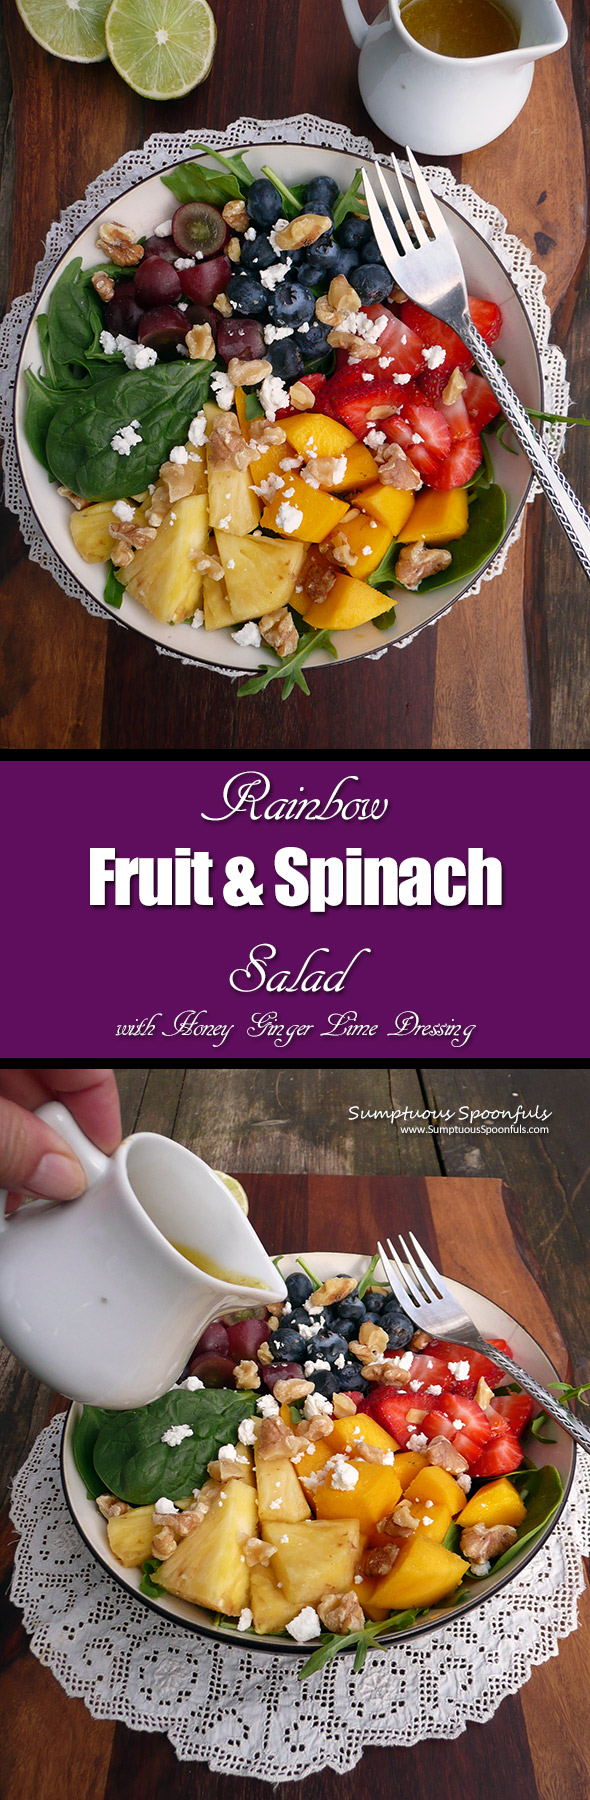 Rainbow Fruit & Spinach Salad w Honey Ginger Lime Dressing ~ Sumptuous Spoonfuls #salad #recipe